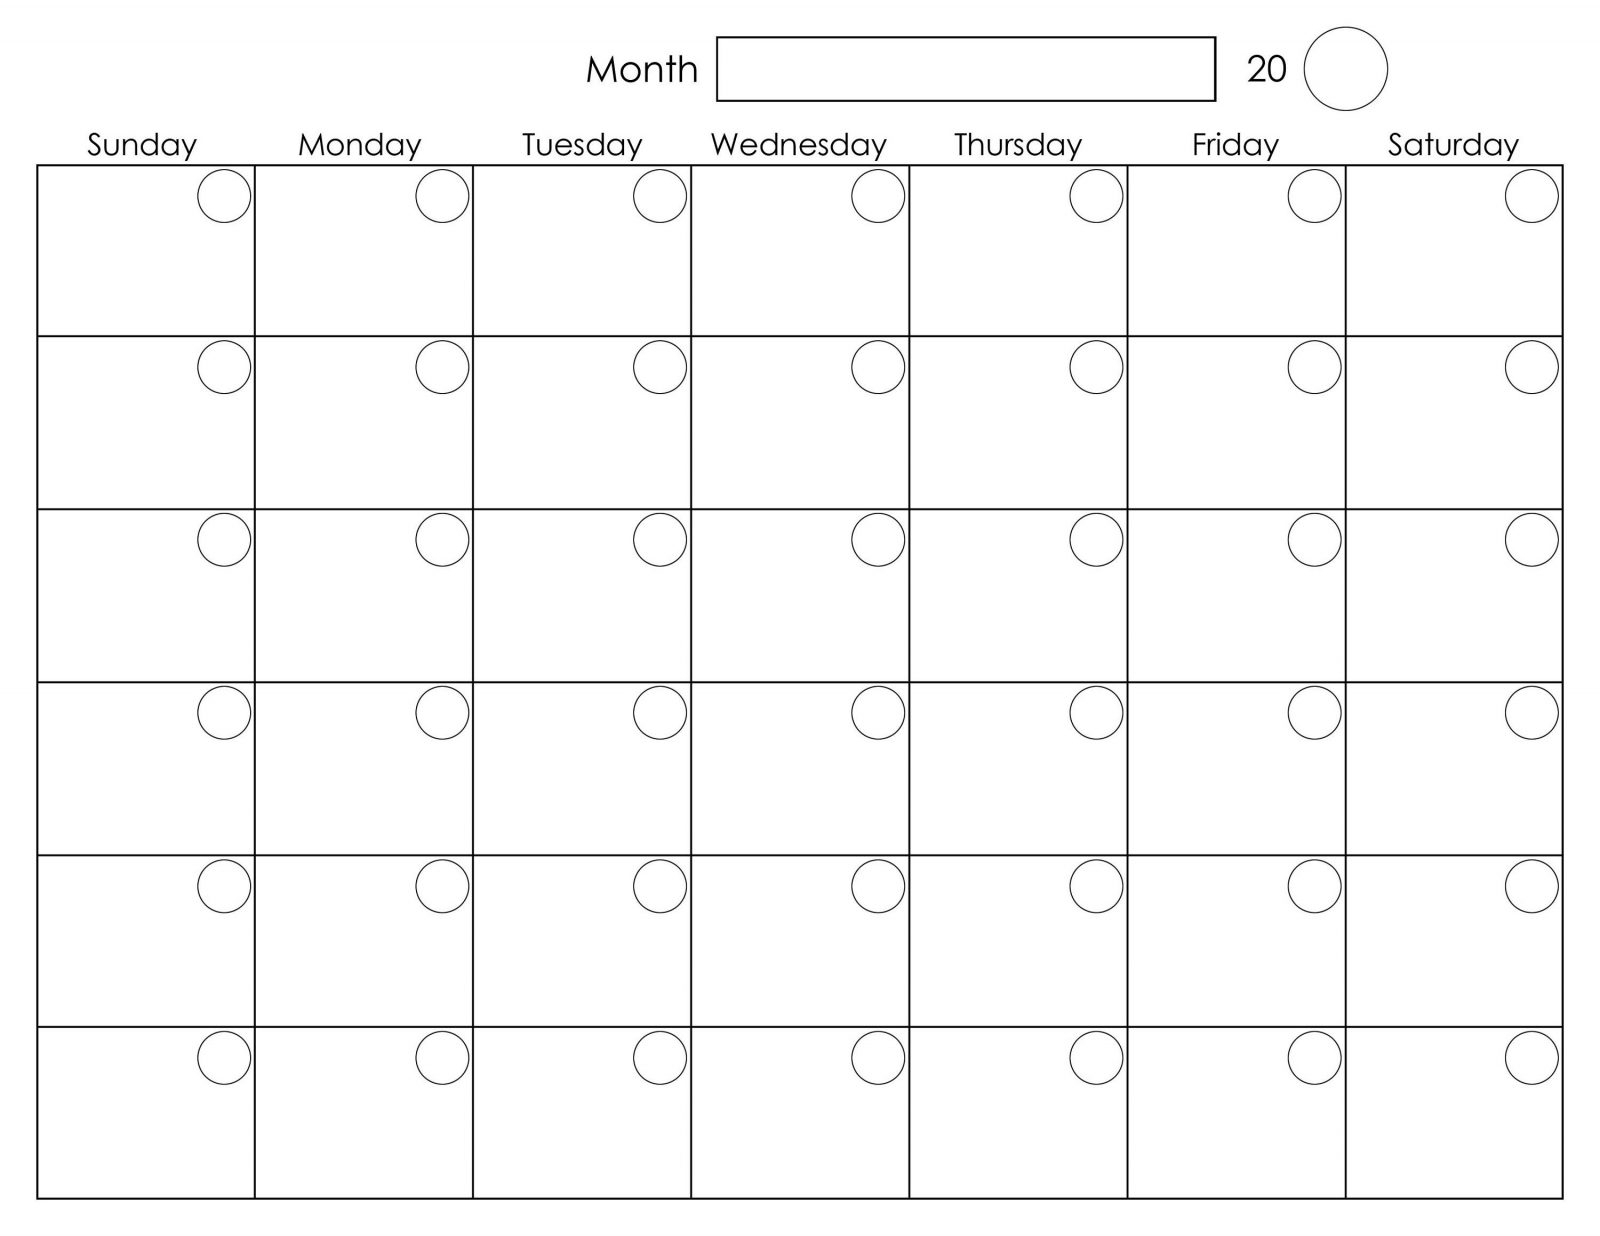 Monday To Friday Monthly Calendar Template | Monthly throughout Blank Calendar Template Monday Through Friday